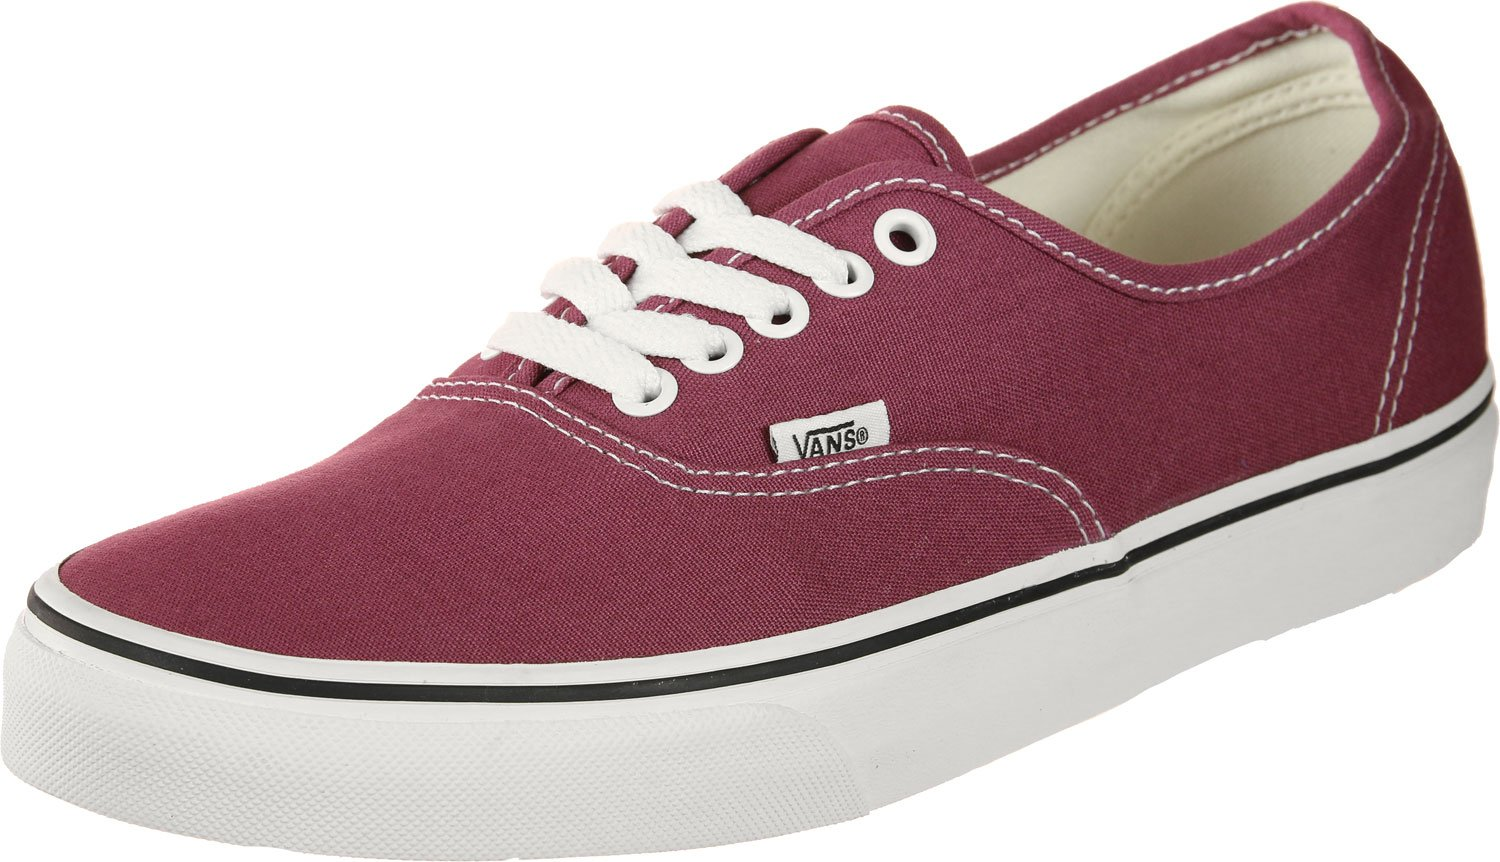 Vans AUTHENTIC, AUTHENTIC, AUTHENTIC, Unisex-Erwachsene Sneakers Weinrot addd53